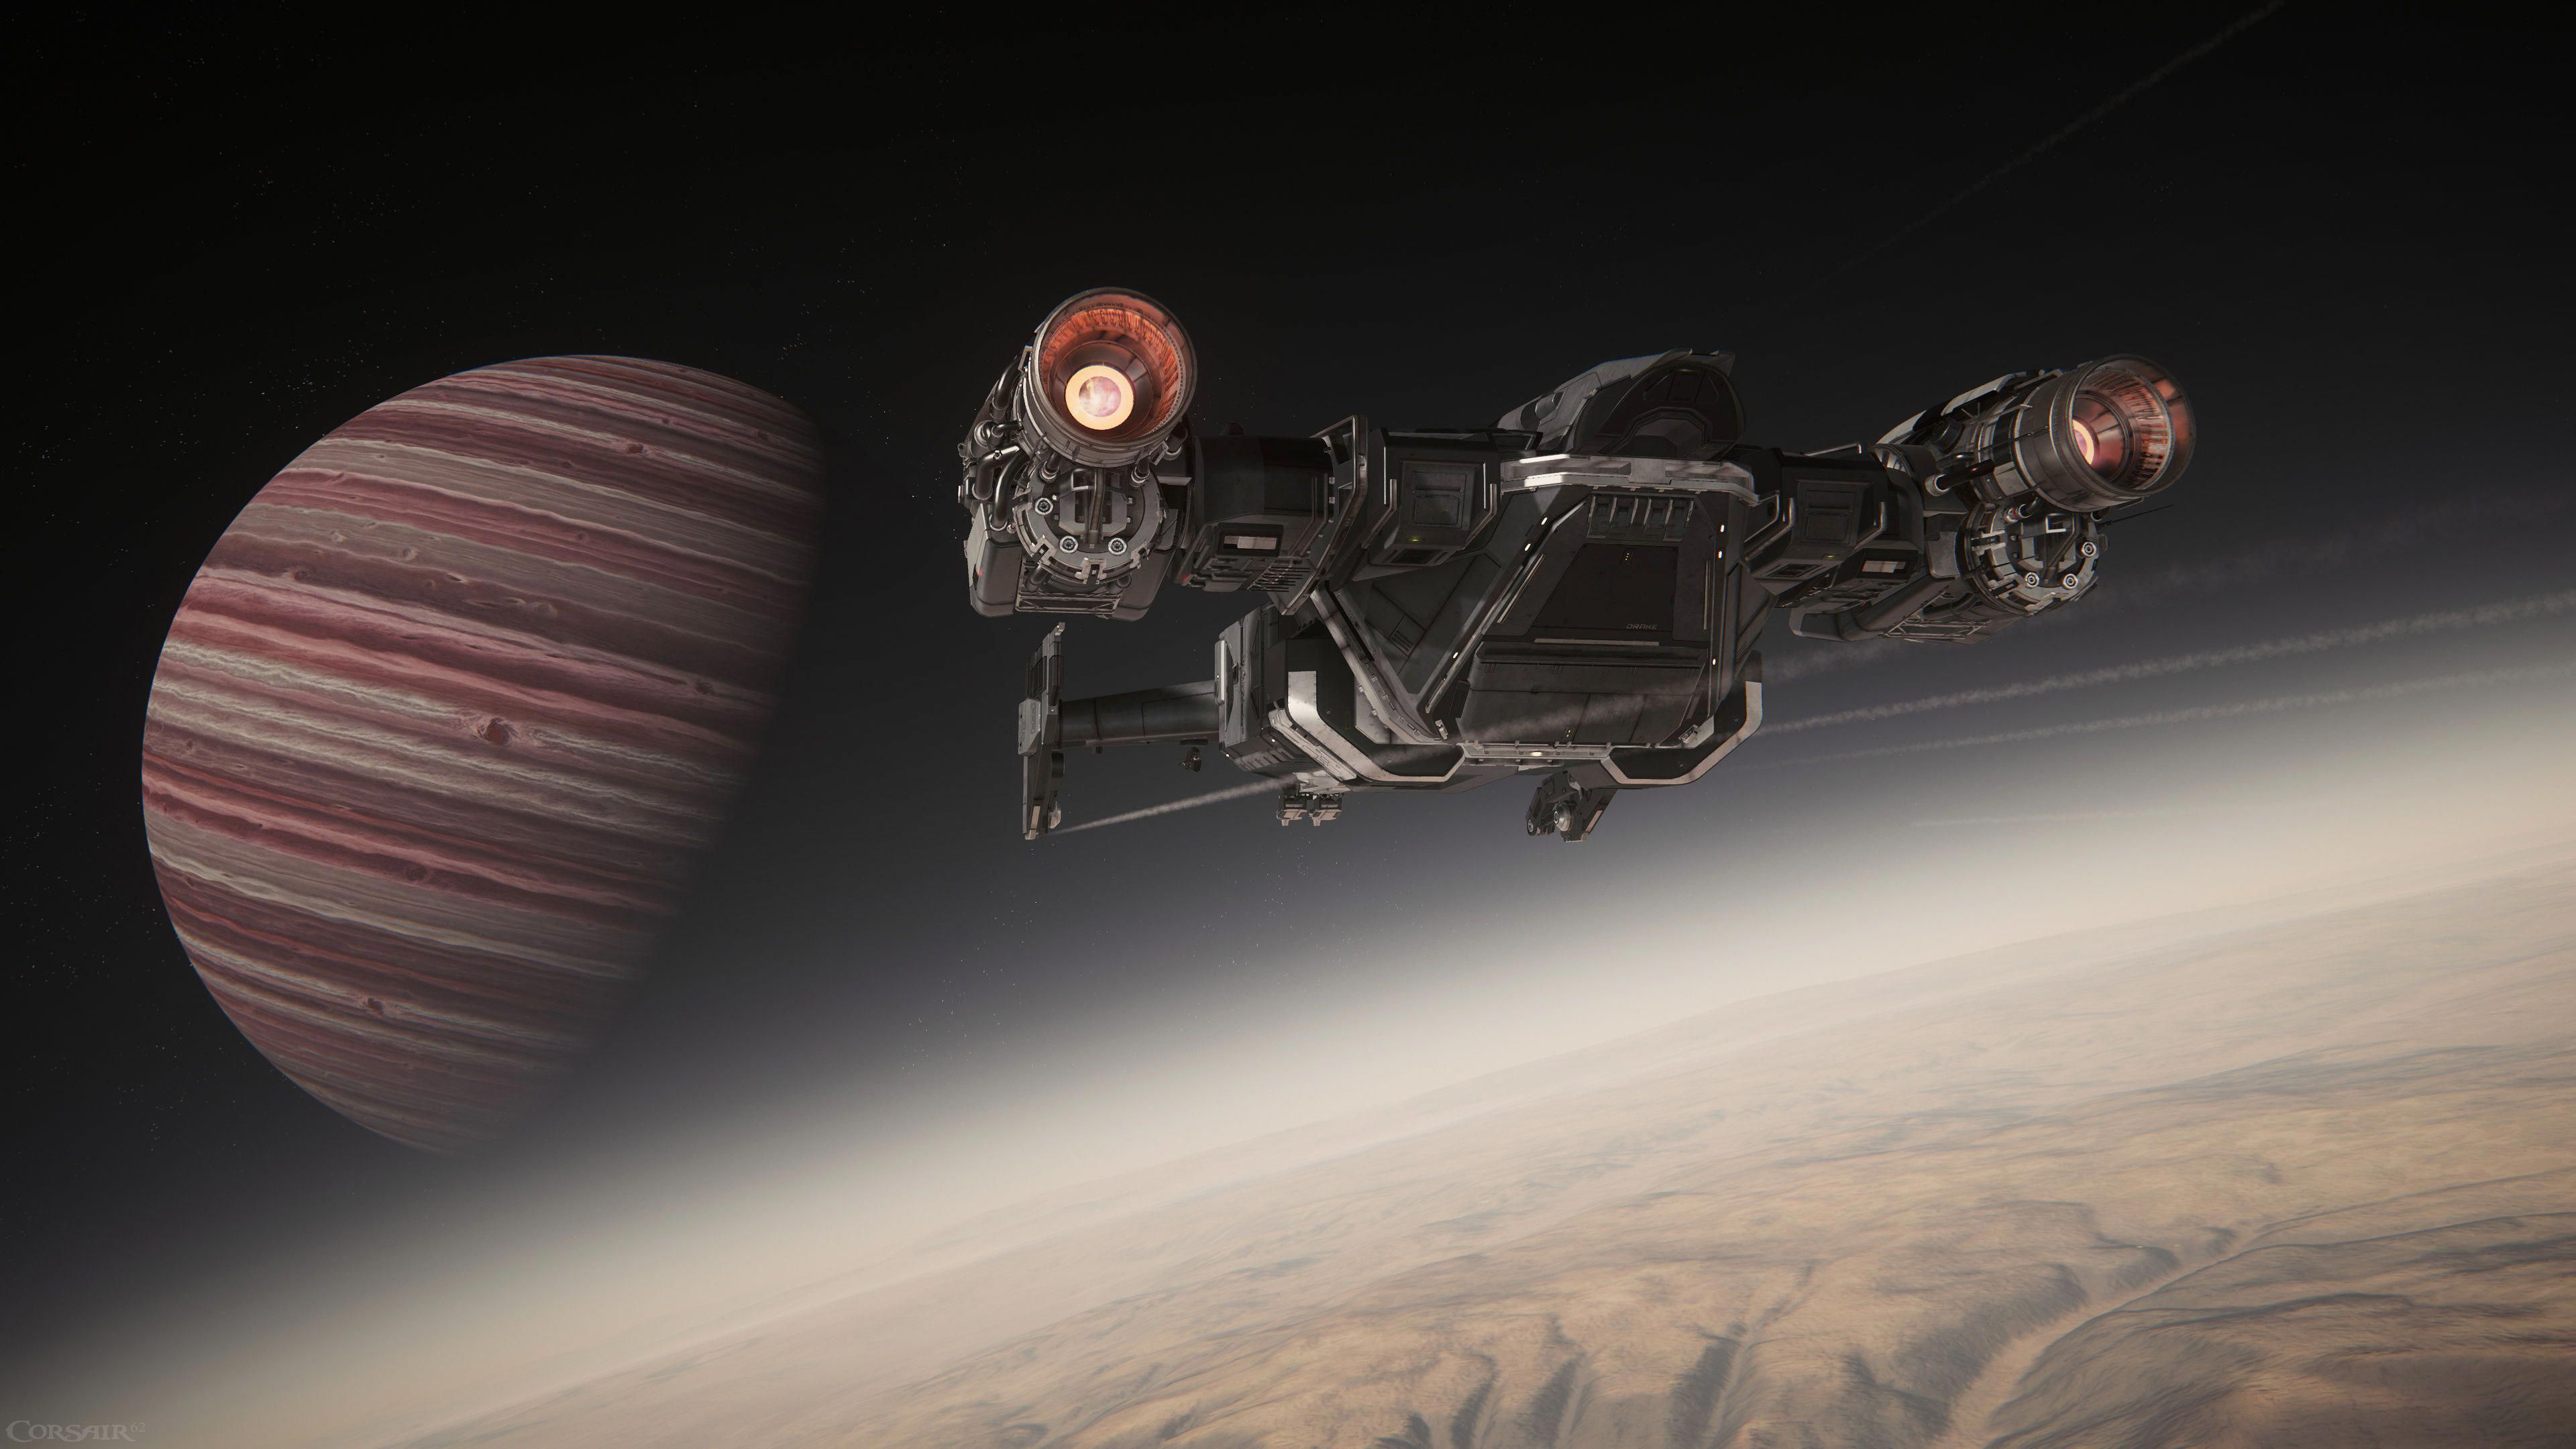 Star Citizen Back To The Olisar 4k Star Citizen Wallpapers Spaceship Wallpapers Pc Games Wallpapers Hd Wallpapers Star Citizen Pc Games Wallpapers Gaming Pc